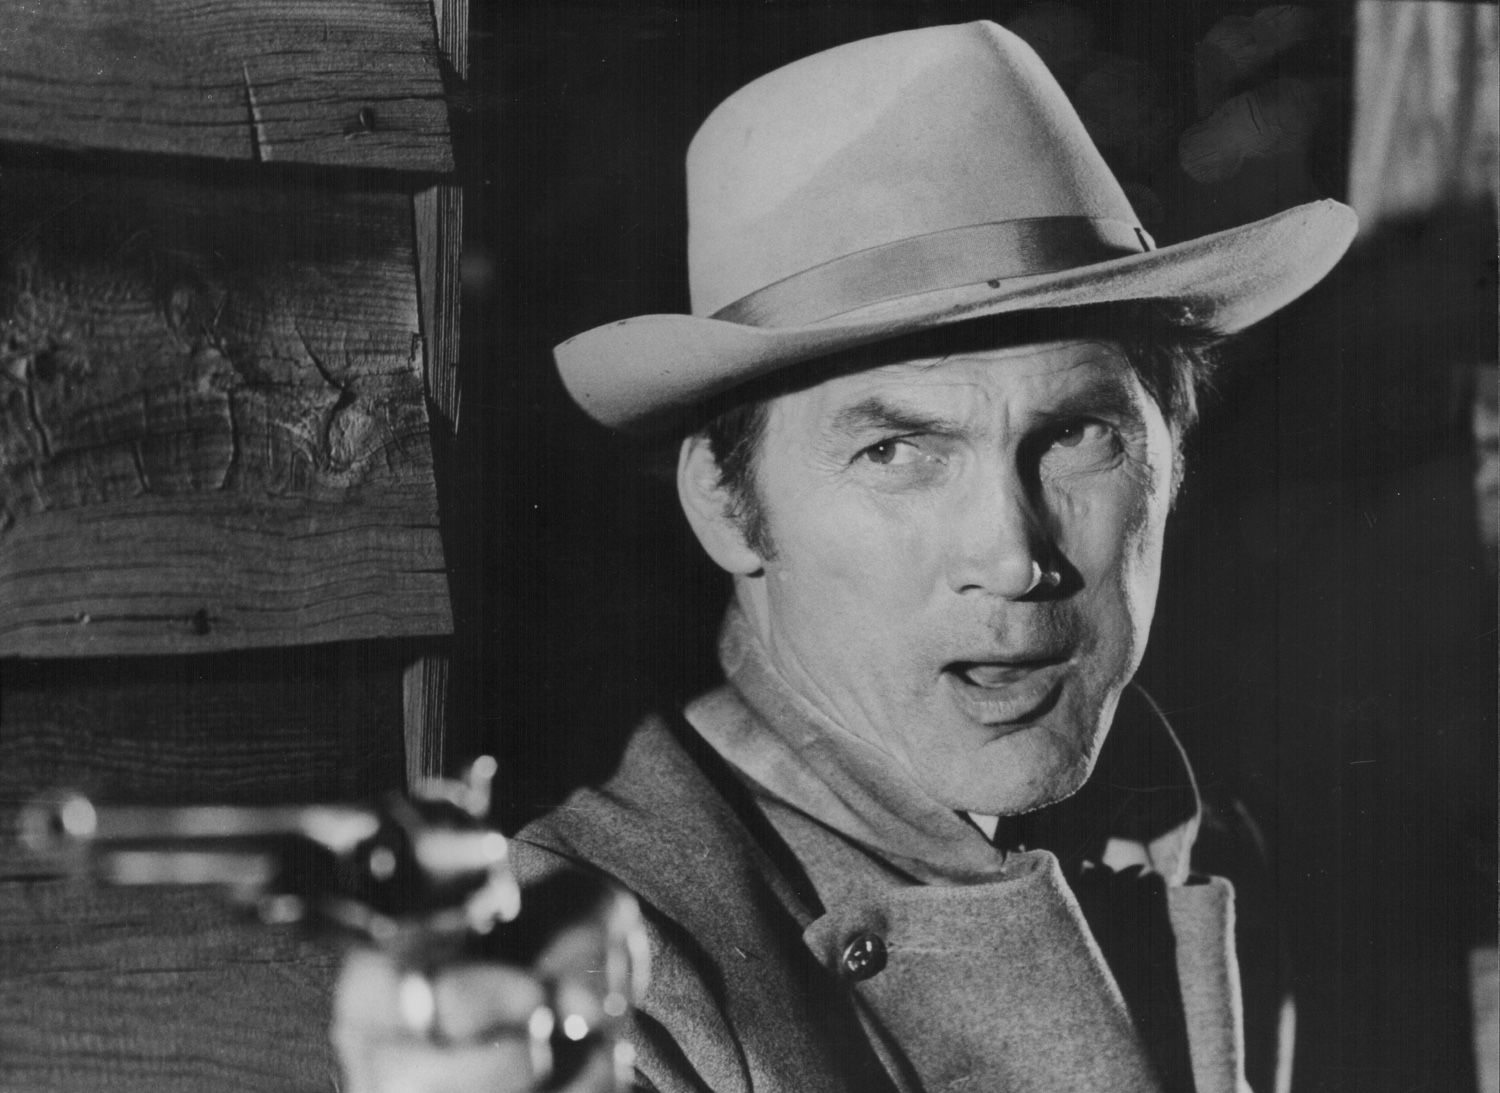 Biography of Jack Palance, Action Movie Star and Onscreen Villain